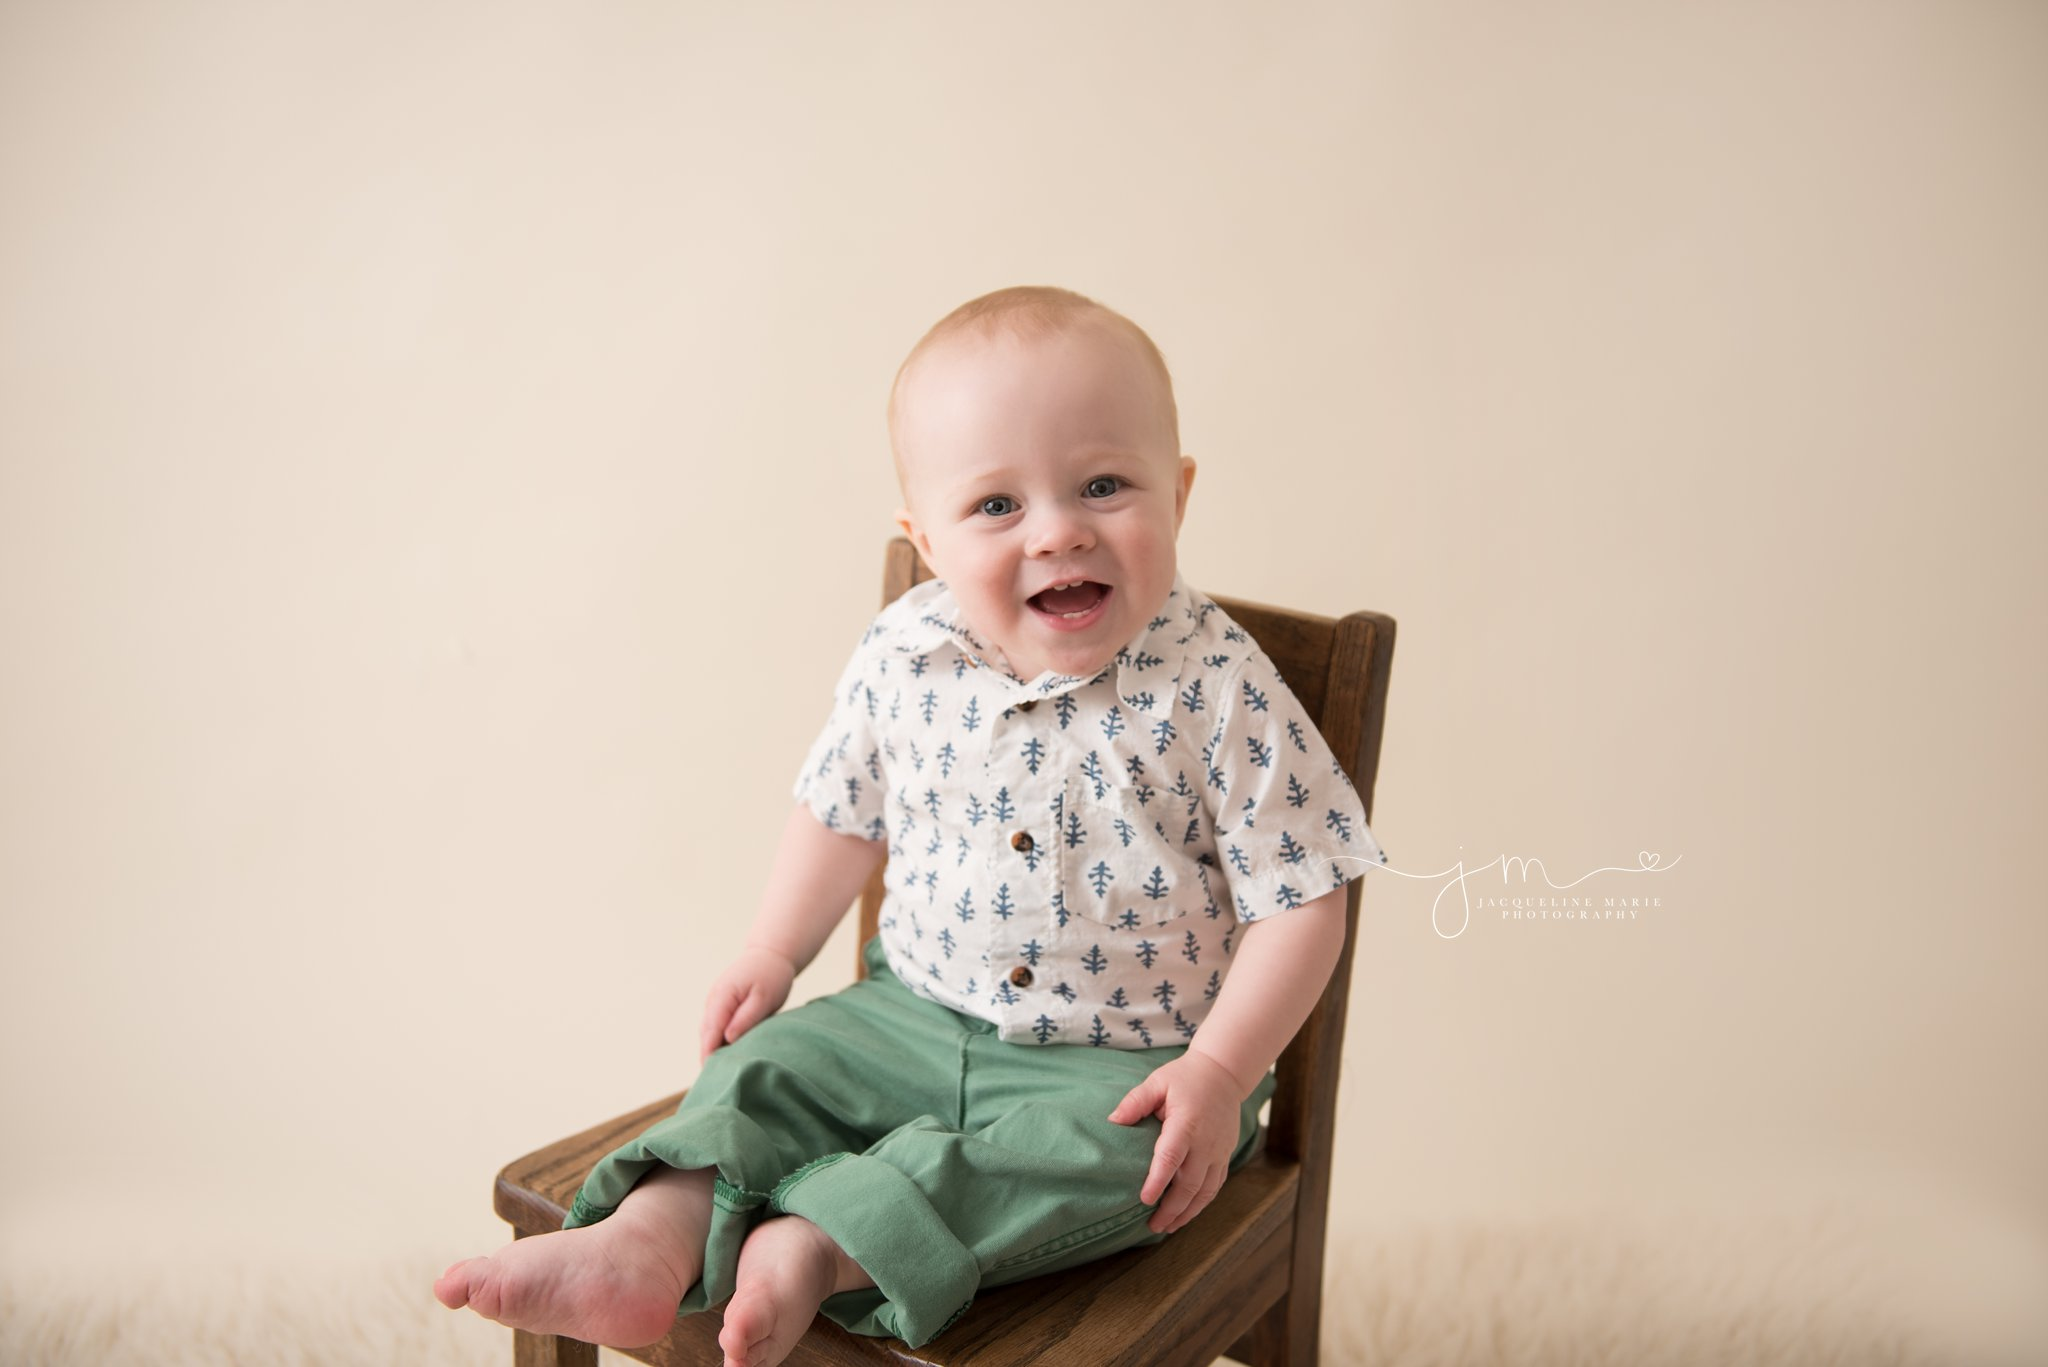 columbus ohio 1 year old smiles while wearing green pants and sitting on wooden chair for first birthday pictures